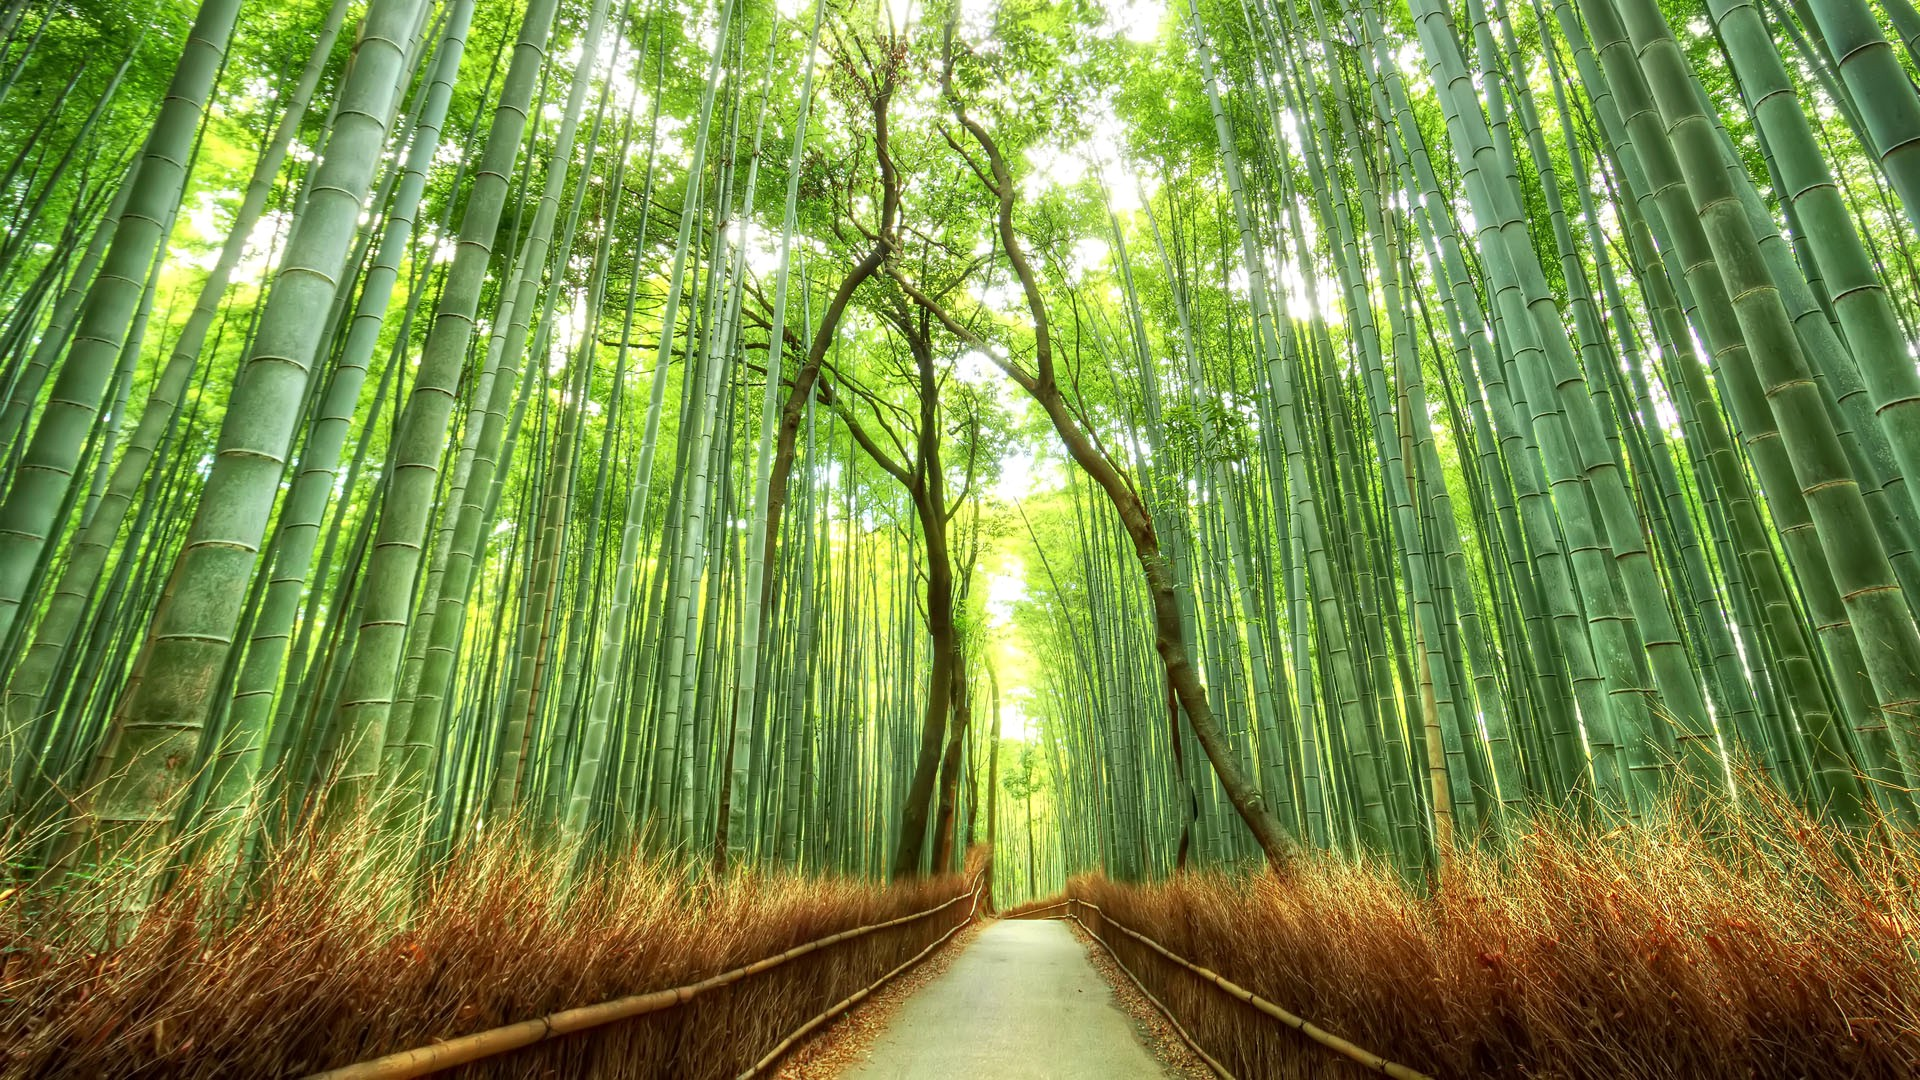 Vegetable Garden In Fall Wallpaper Landscape Bamboo Path Japan Nature Fence Forest